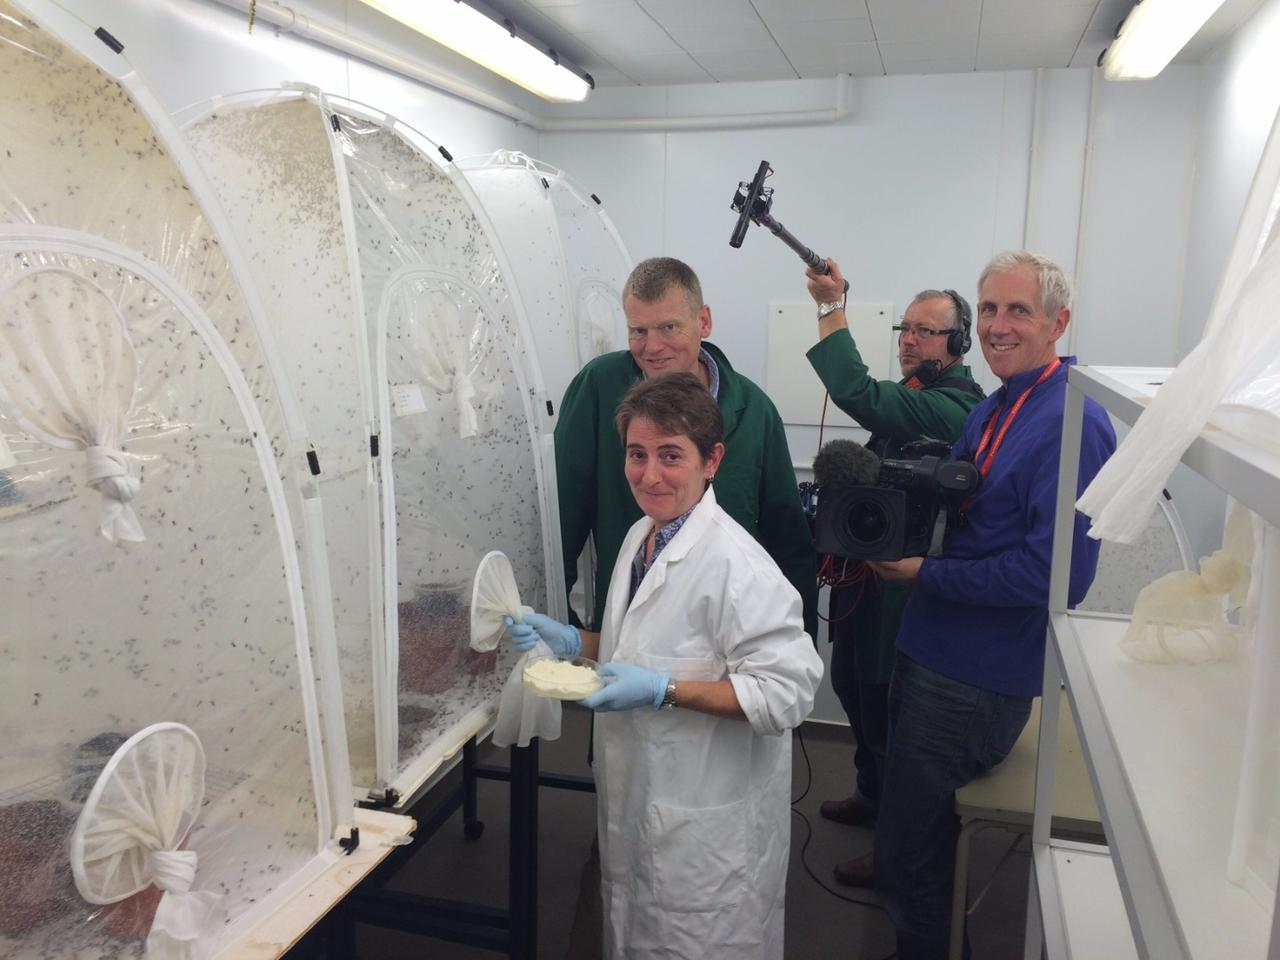 The EU is exploring the viability of fly larvae as a livestock food source. Dr Elaine Fitches, PROteINSECT project co-ordinator, with a BBC film crew.